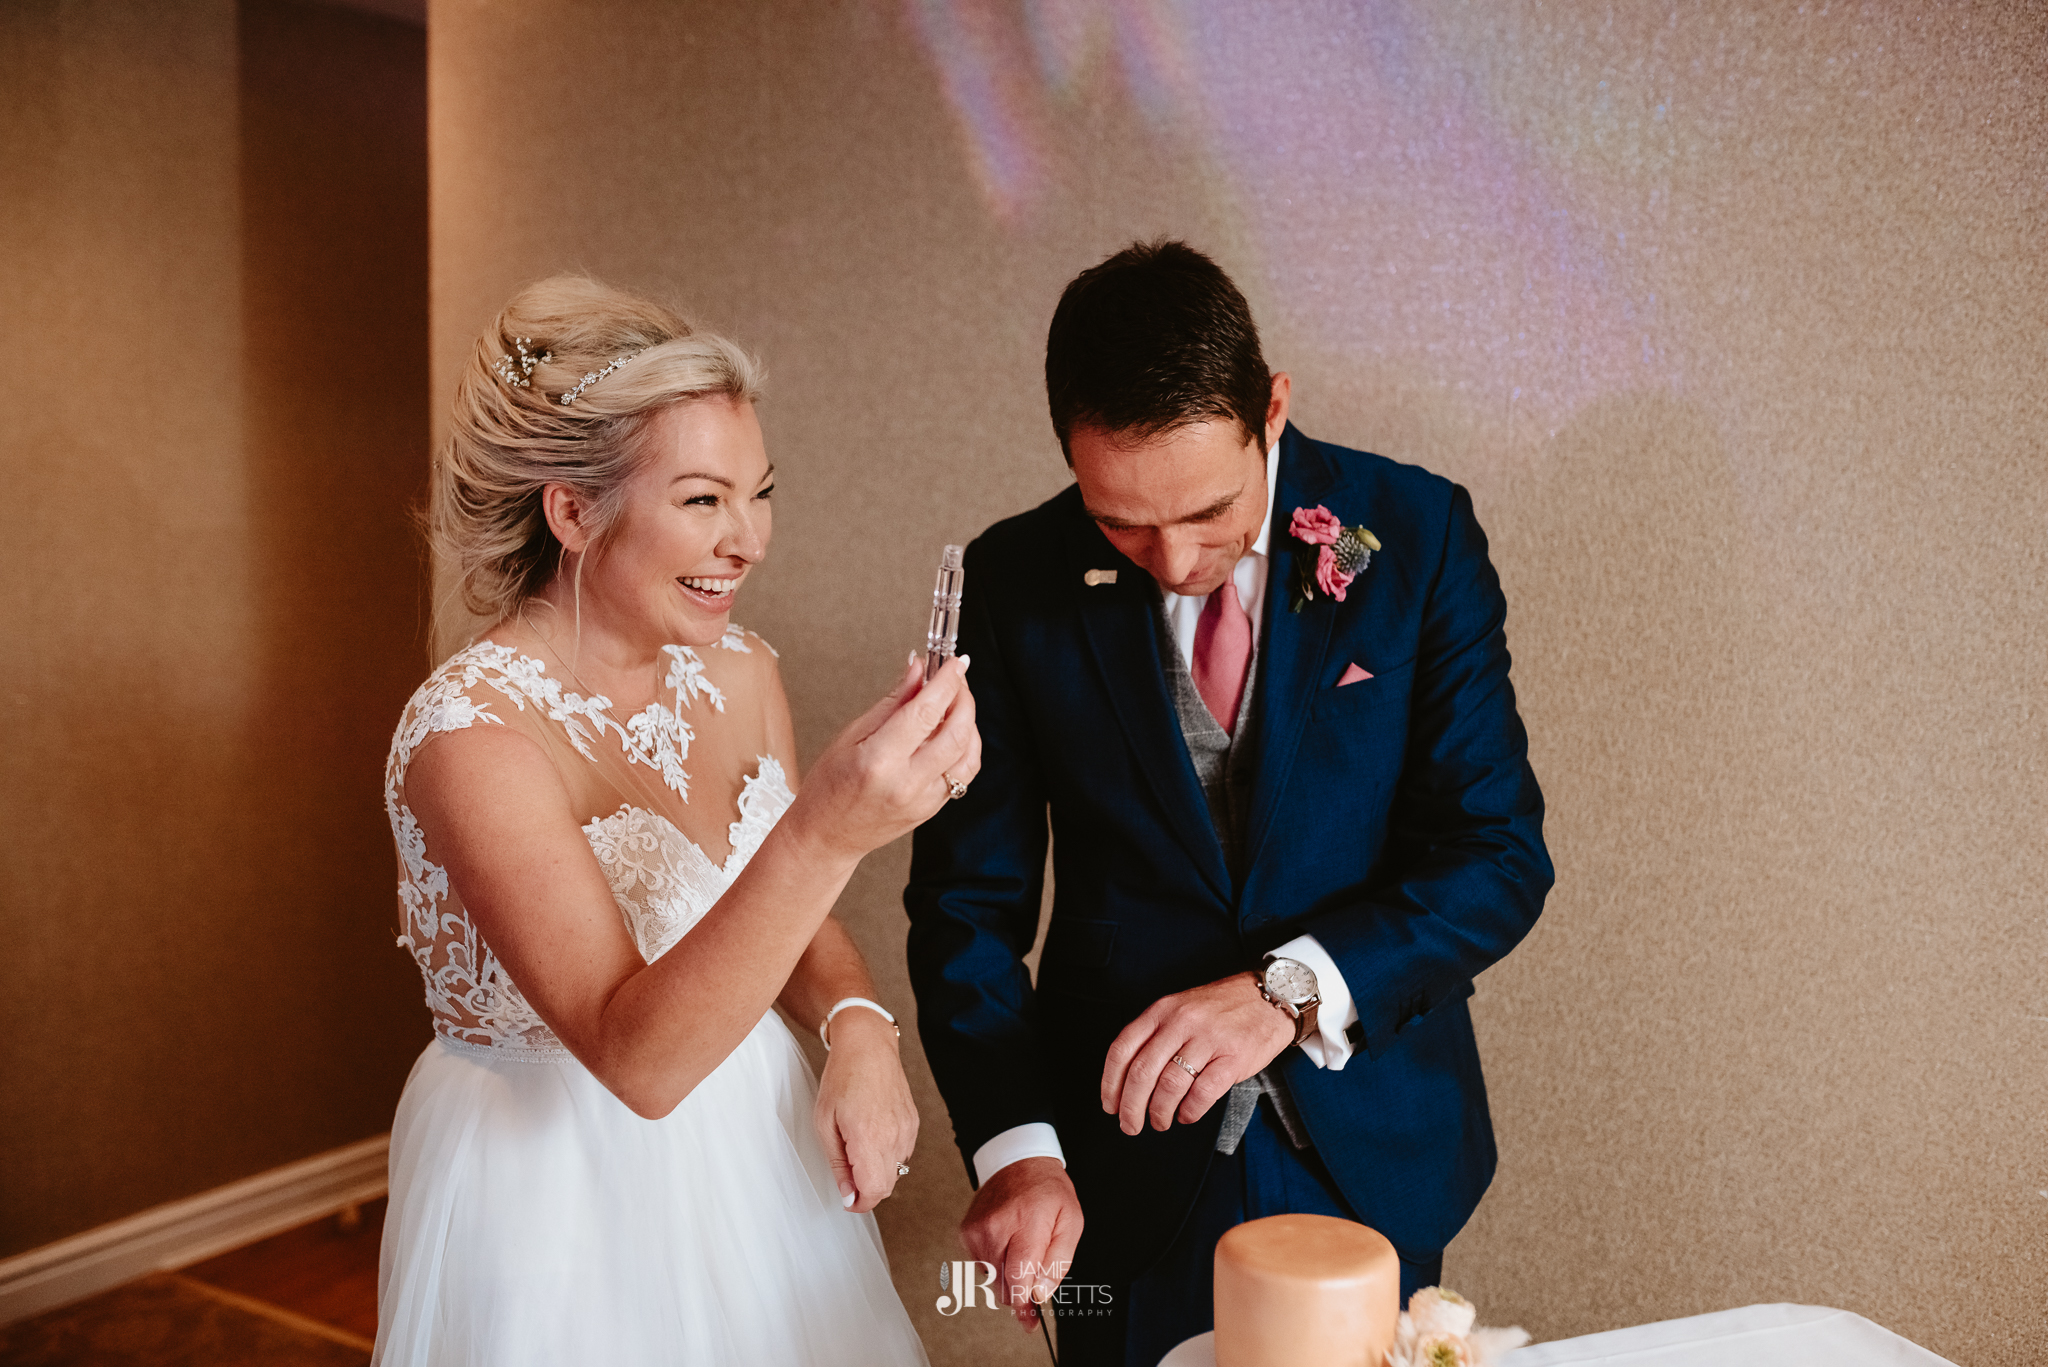 Wroxeter-Hotel-Wedding-Photography-In-Shropshire-By-Shropshire-Wedding-Photographer-Jamie-Ricketts-212.JPG